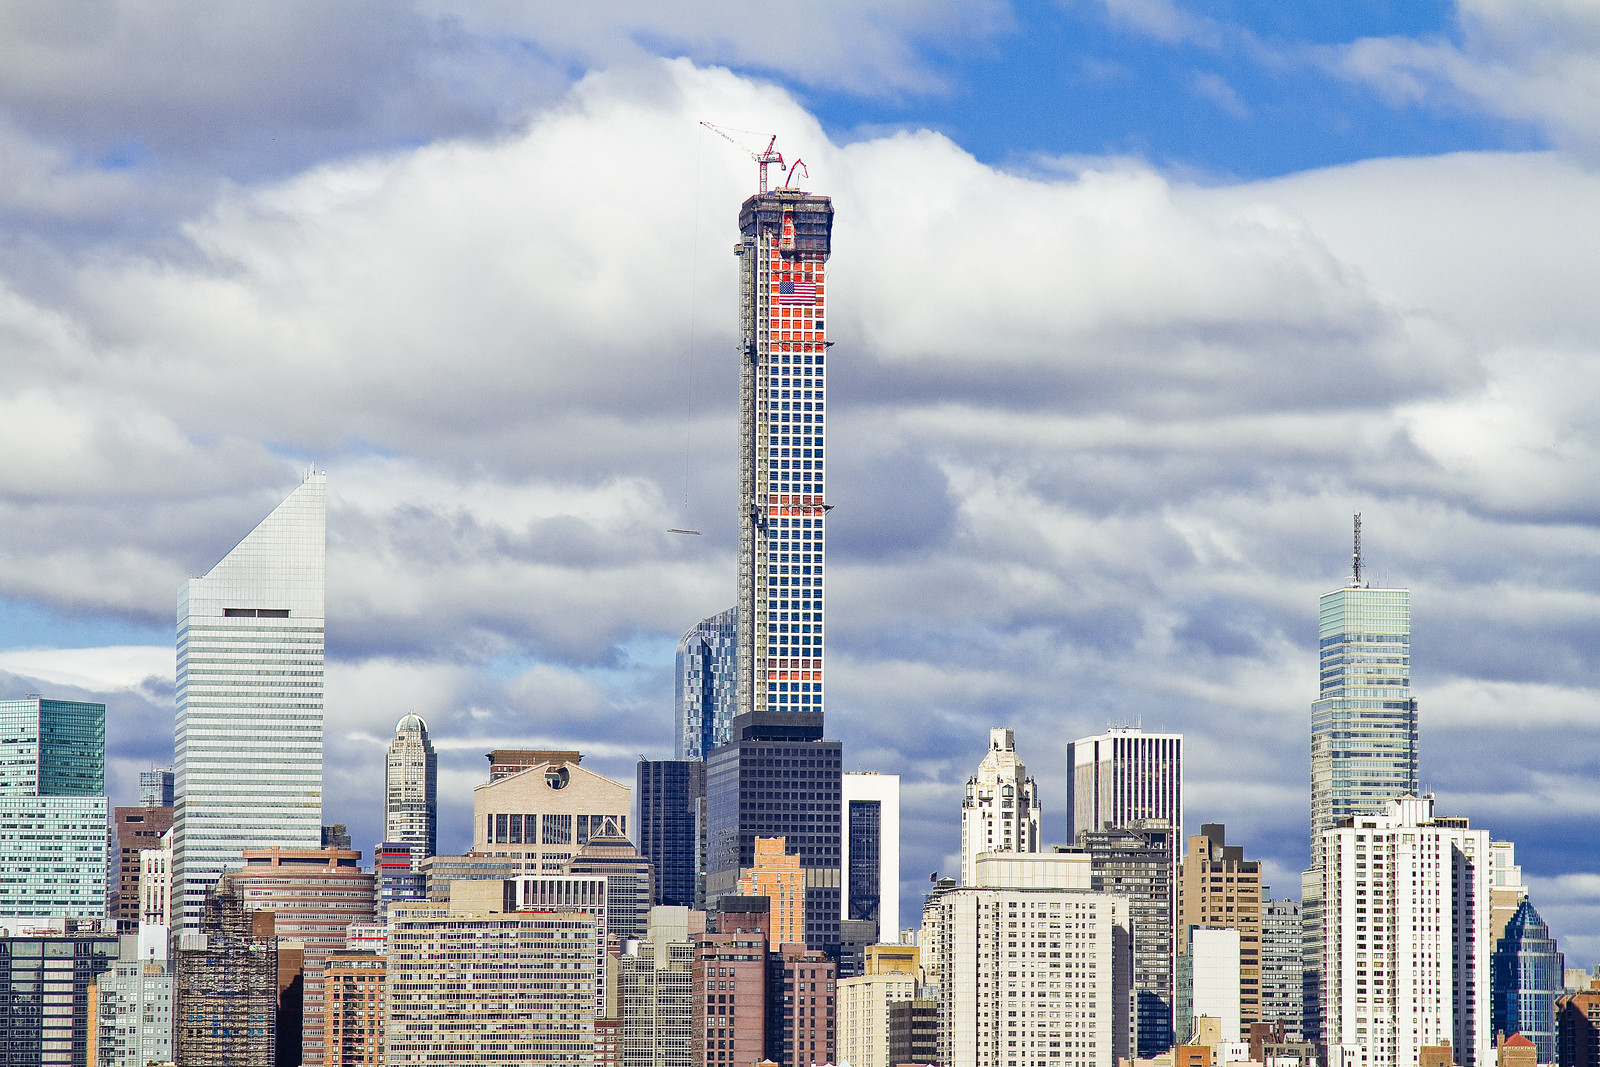 Madison Erects Giant Phallic Tower To >> New York Supertalls Archive Page 7 Skyscraperpage Forum